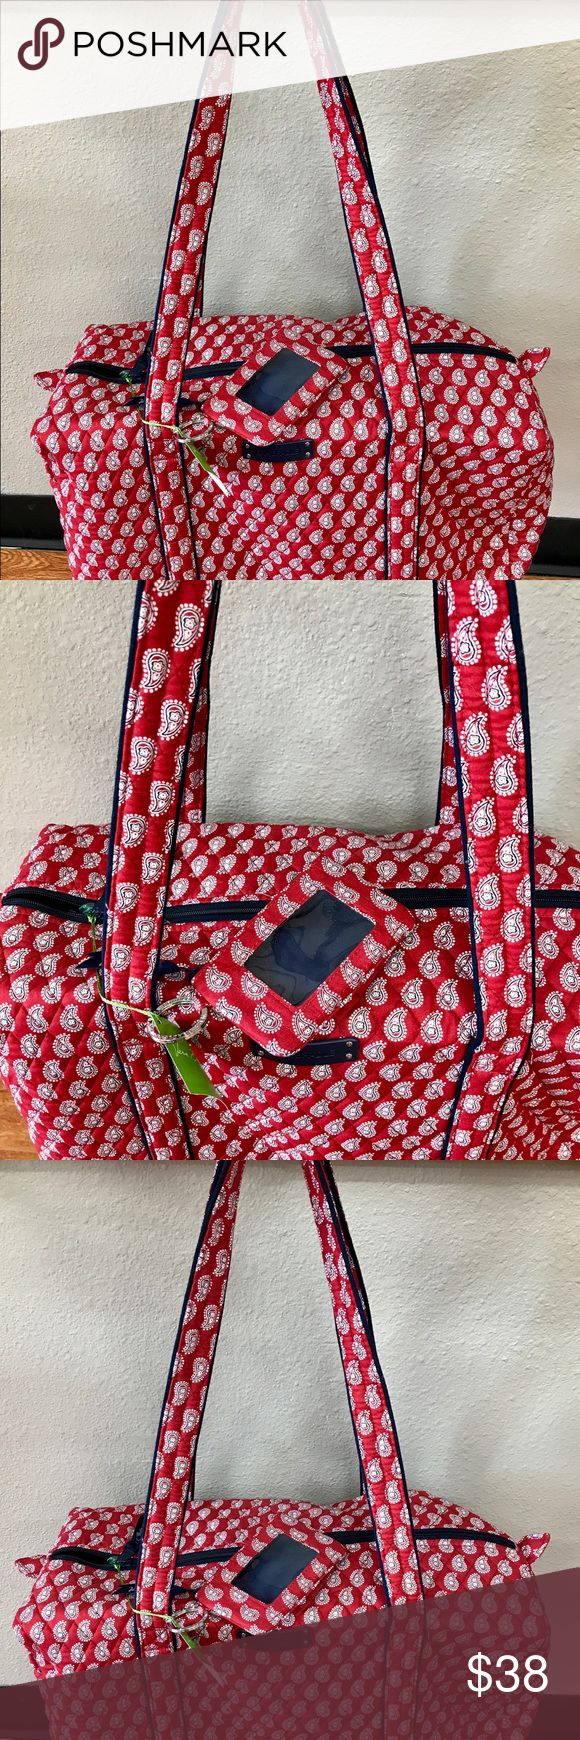 Vera Bradley red bandanna small duffel & ID Holder This is not meant dick small duffel by vera Bradley called petite red bandanna please leave the suggested retail price on the duffel is $68. As a free gift I'm including Annette the matching ID holder. If you've never owned a vera Bradley product you don't know what you're missing get it dirty throw it in the washer and they come out beautiful get it before it's gone. Vera Bradley Bags Travel Bags